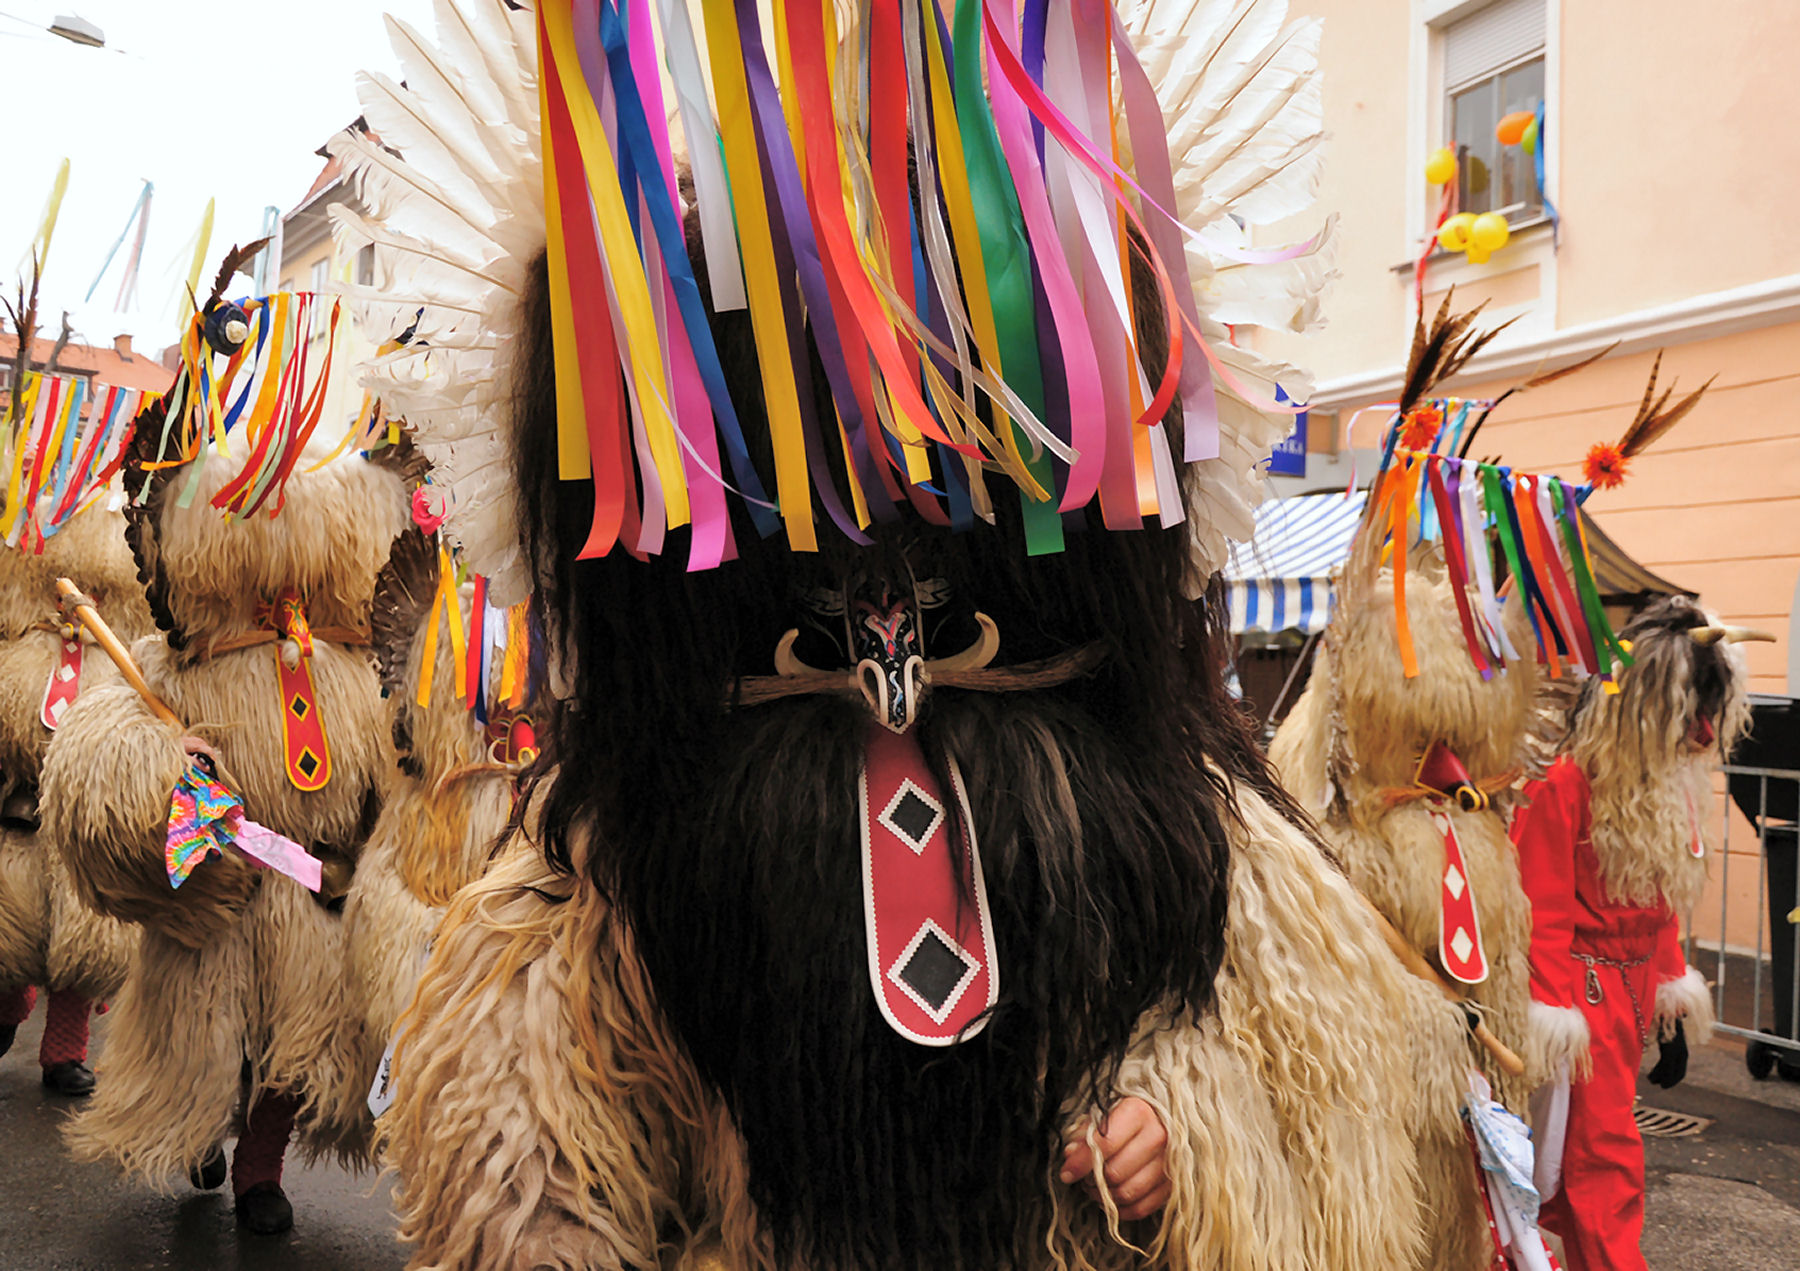 The most famous Slovene carnival figure is the Kurent